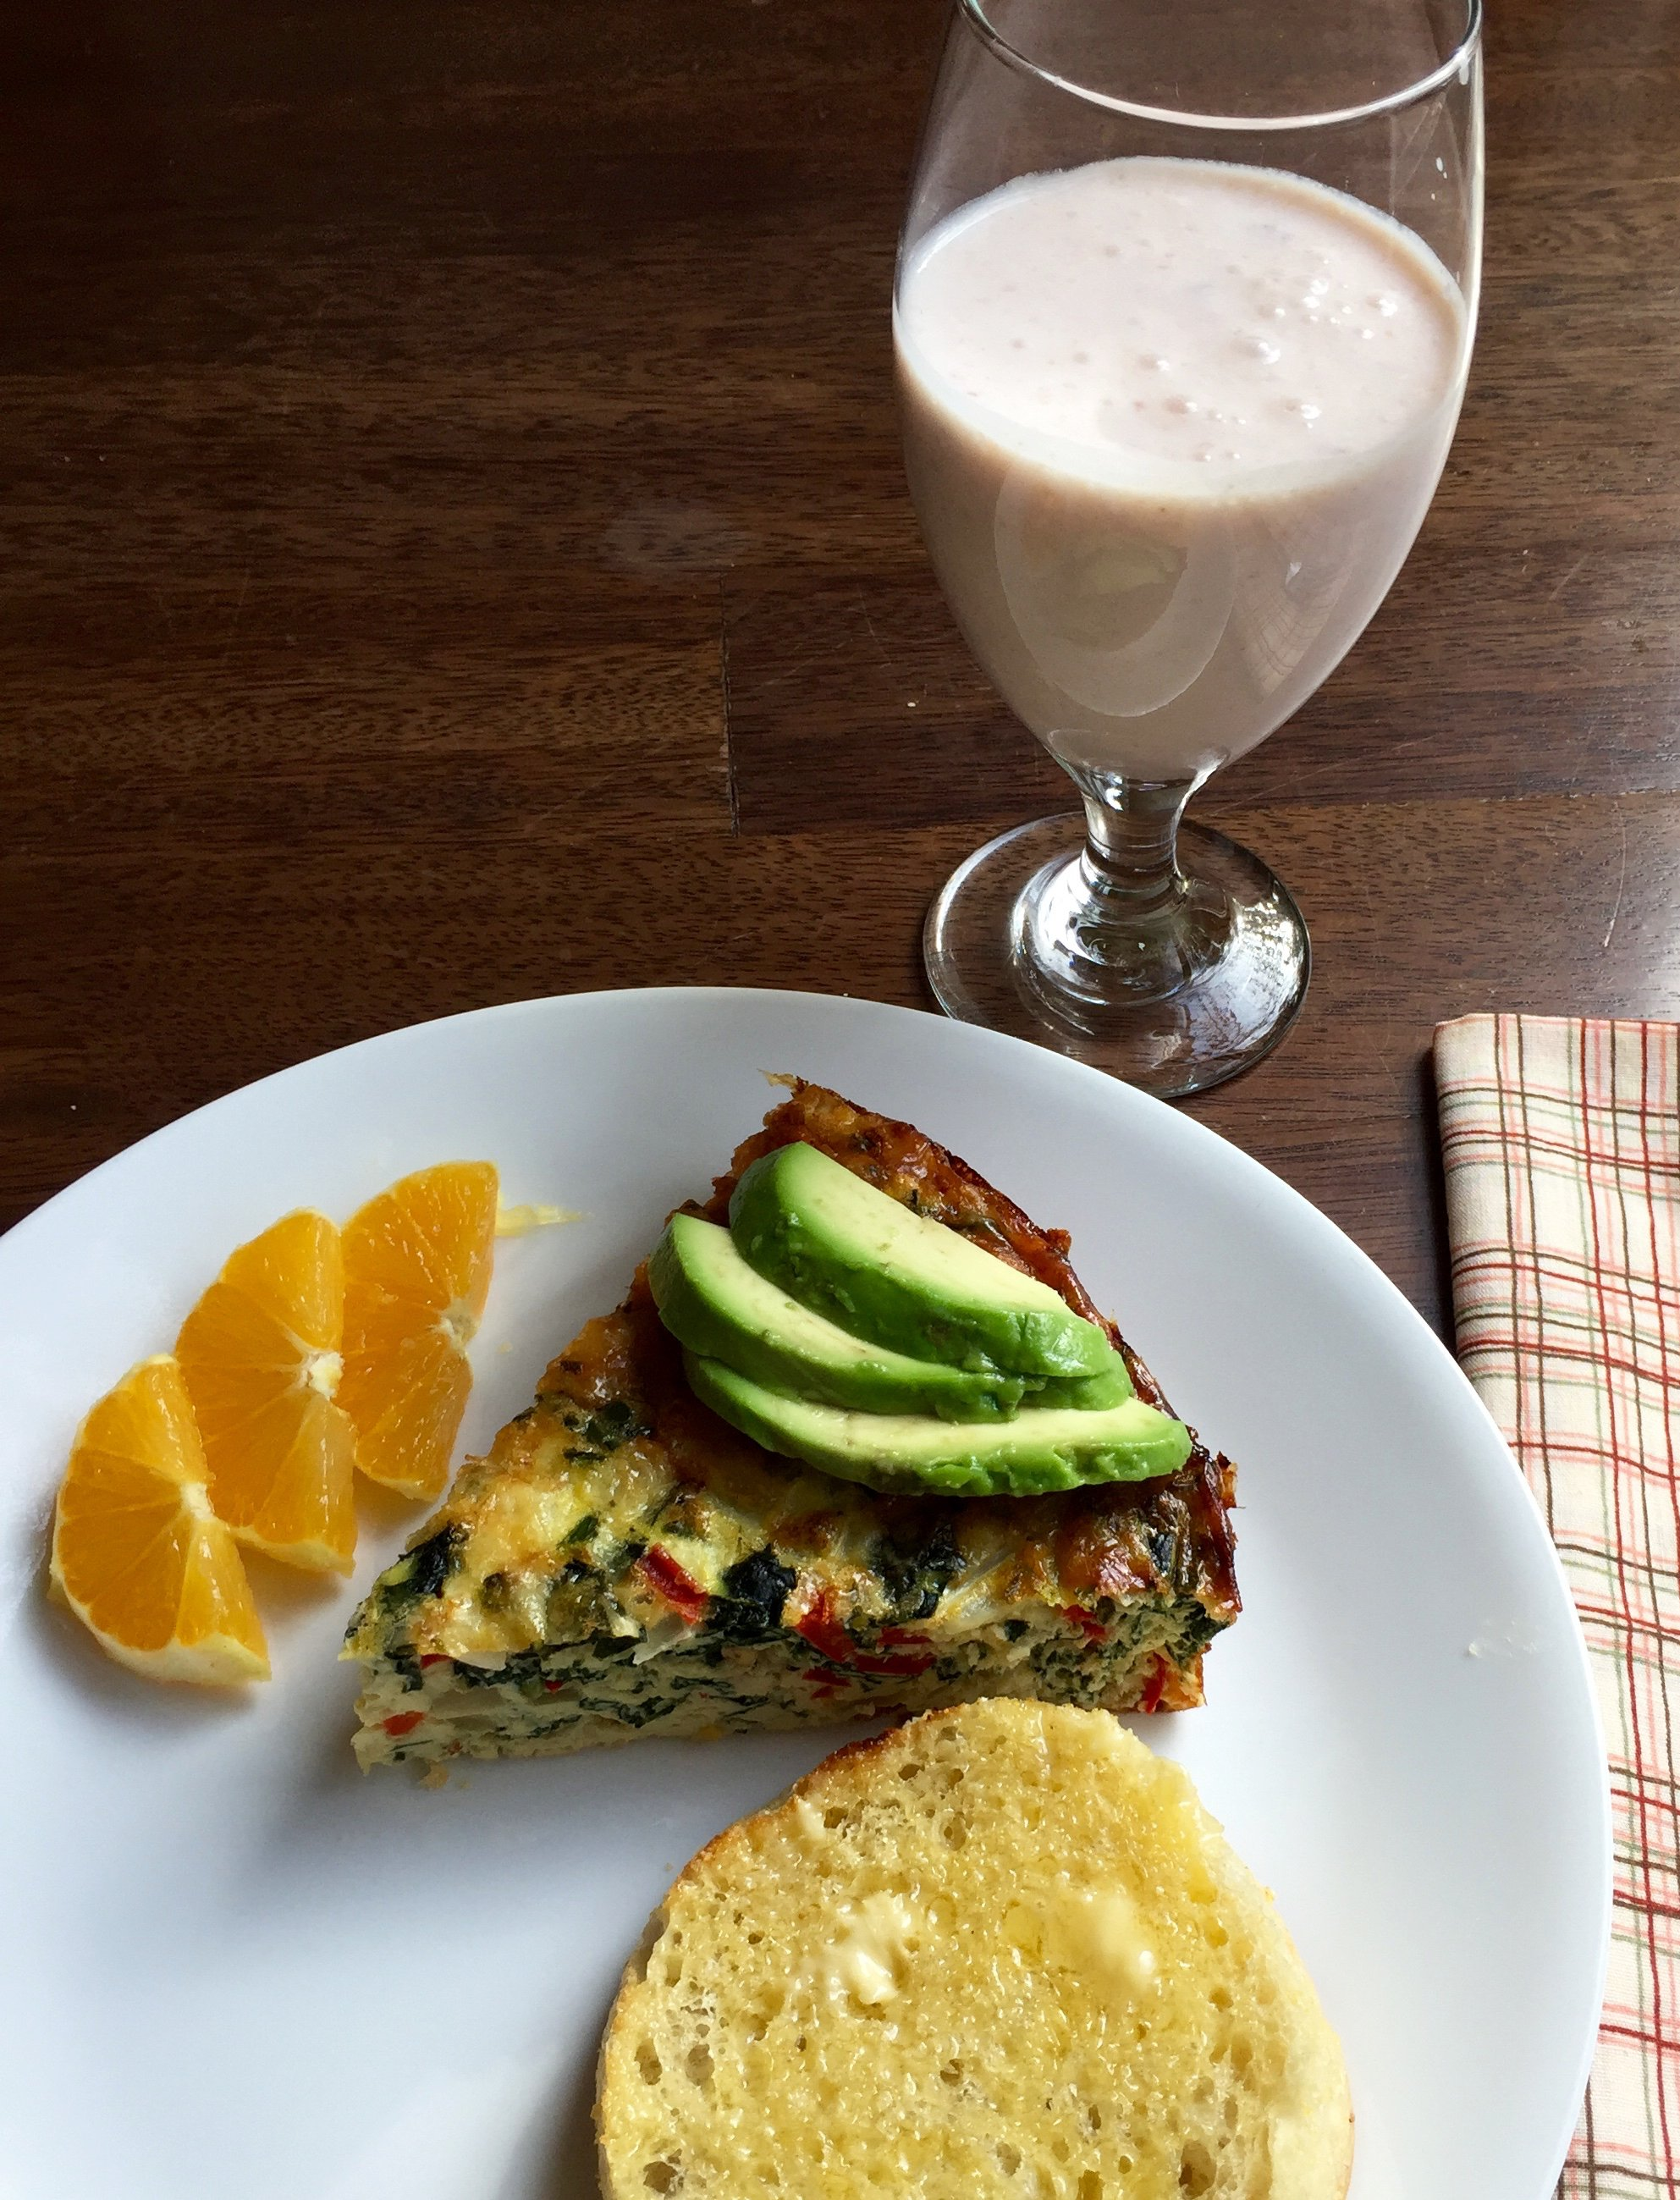 frittata (eggs, milk, onions, bell and poblano peppers, kale, gruyere, cheddar) with avocado